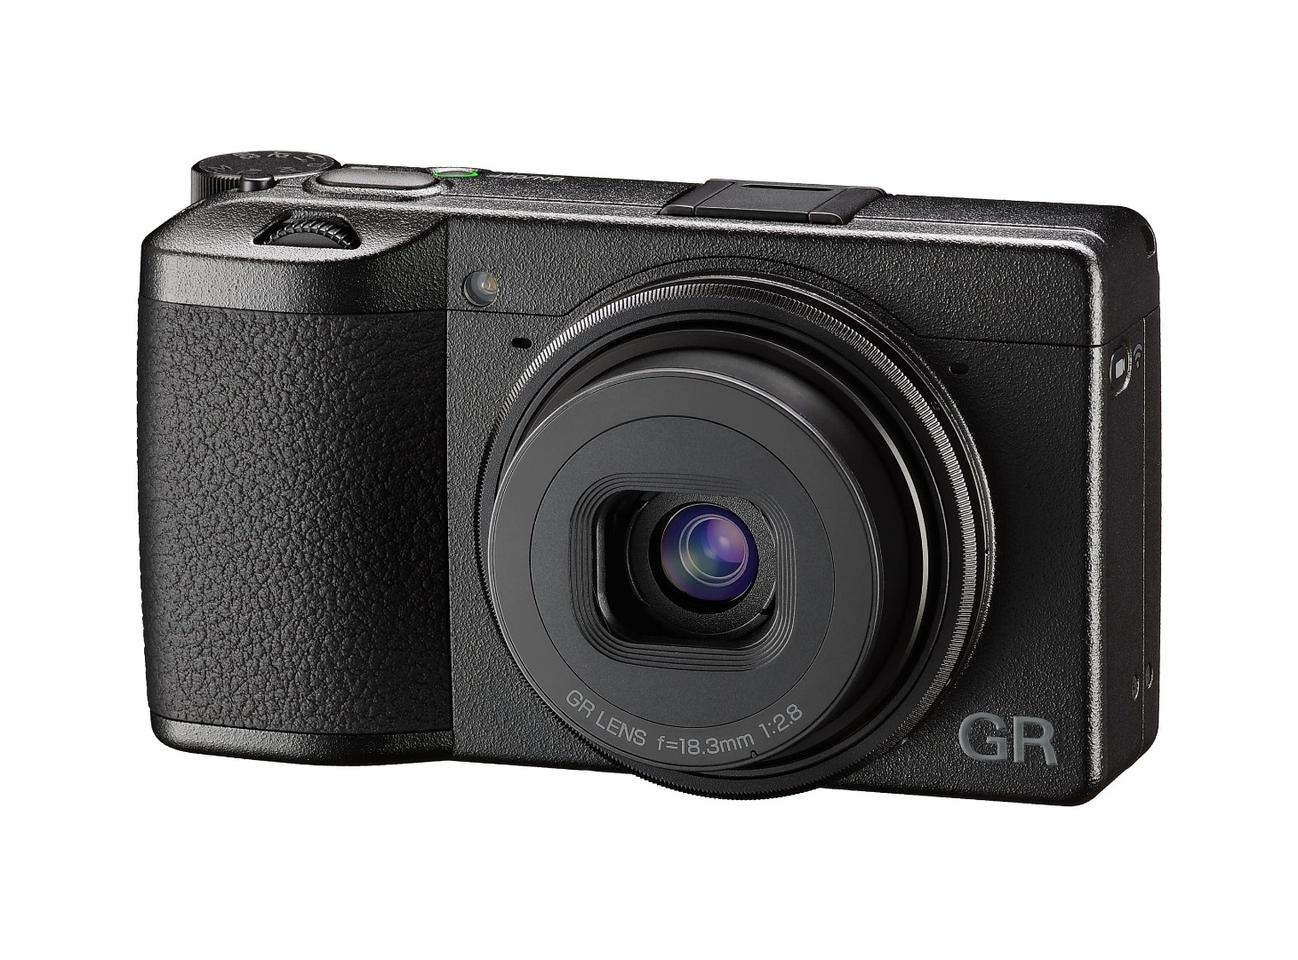 Image resolution gets a bump over the previous GR compact, but battery life takes a serious hit